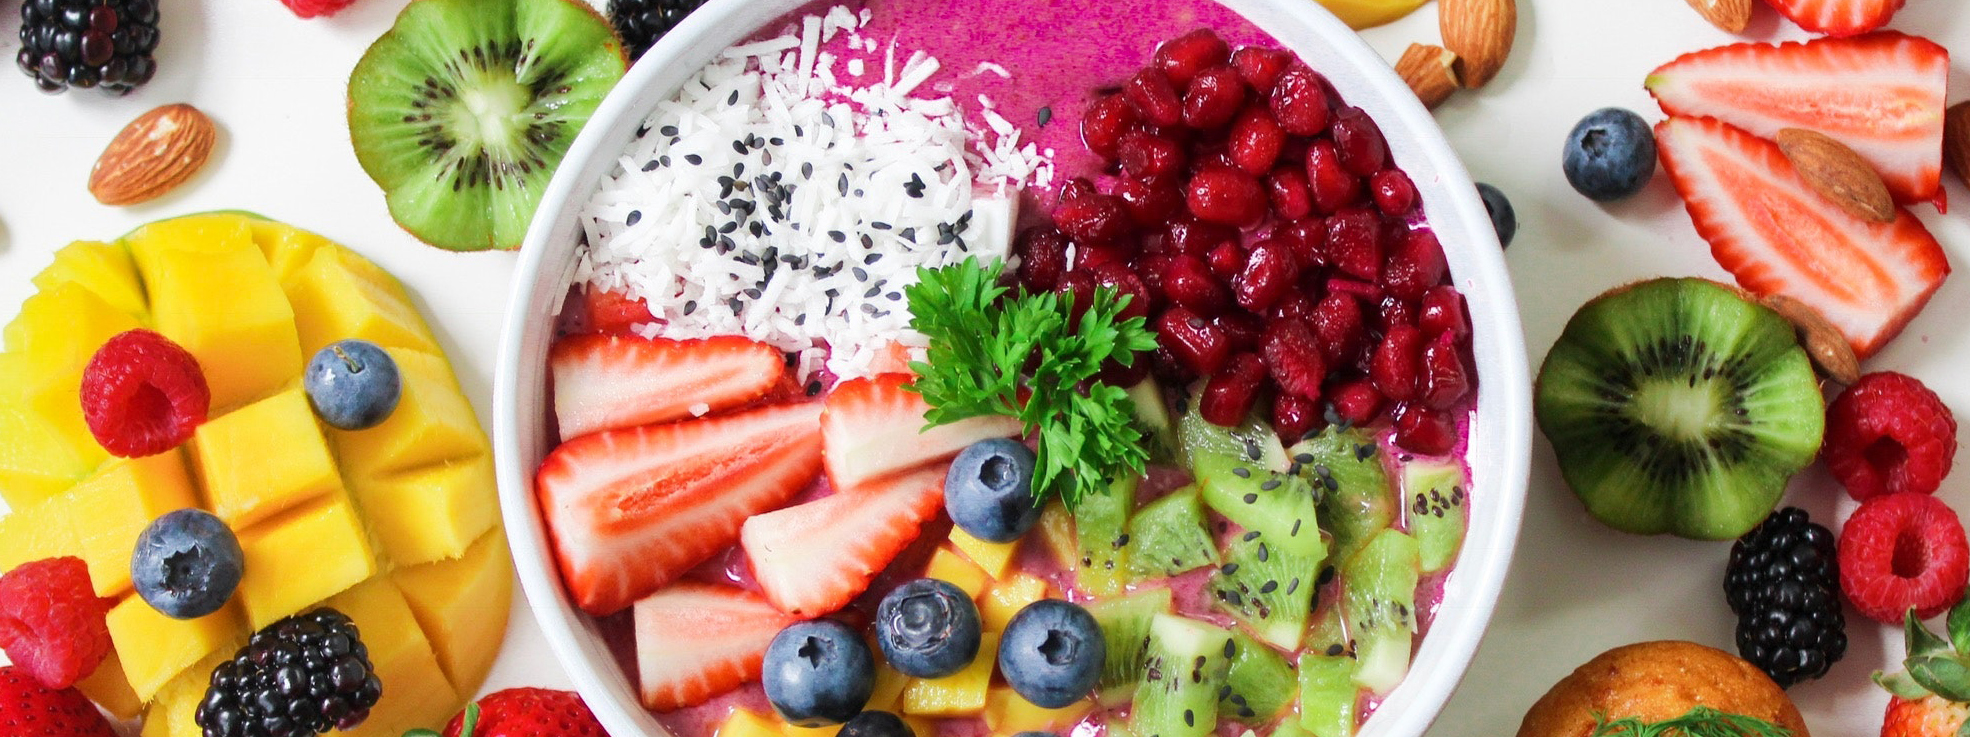 Healthy Eating Tips For Winter Season